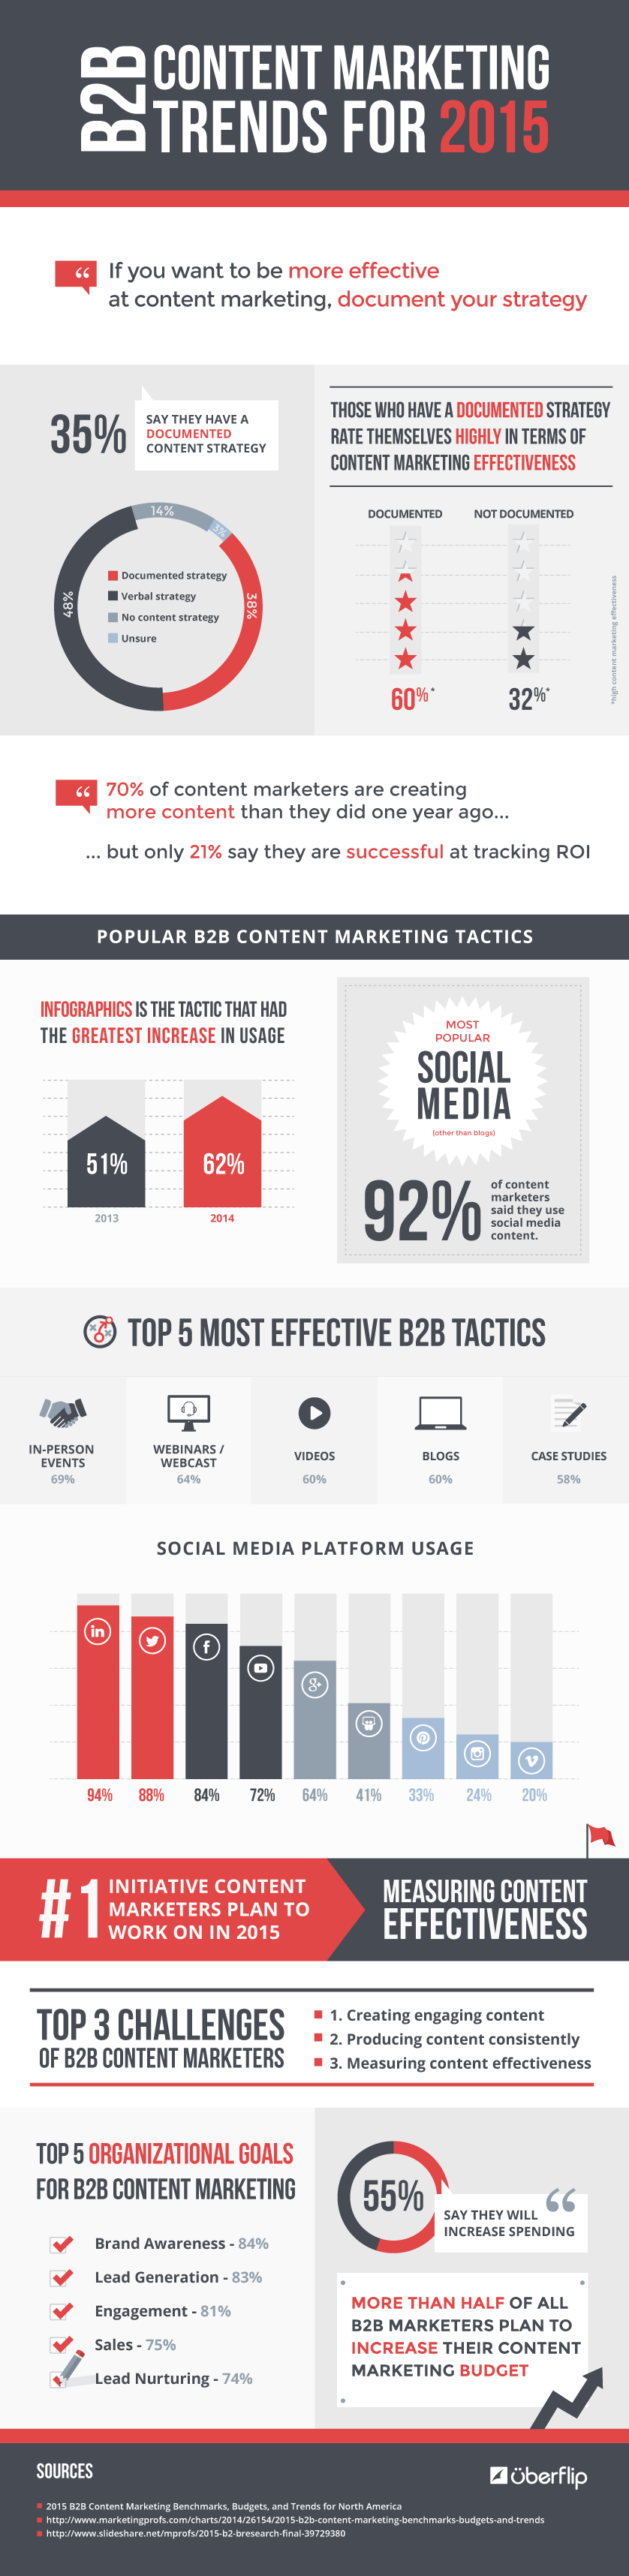 b2b-content-marketing-trends-2015